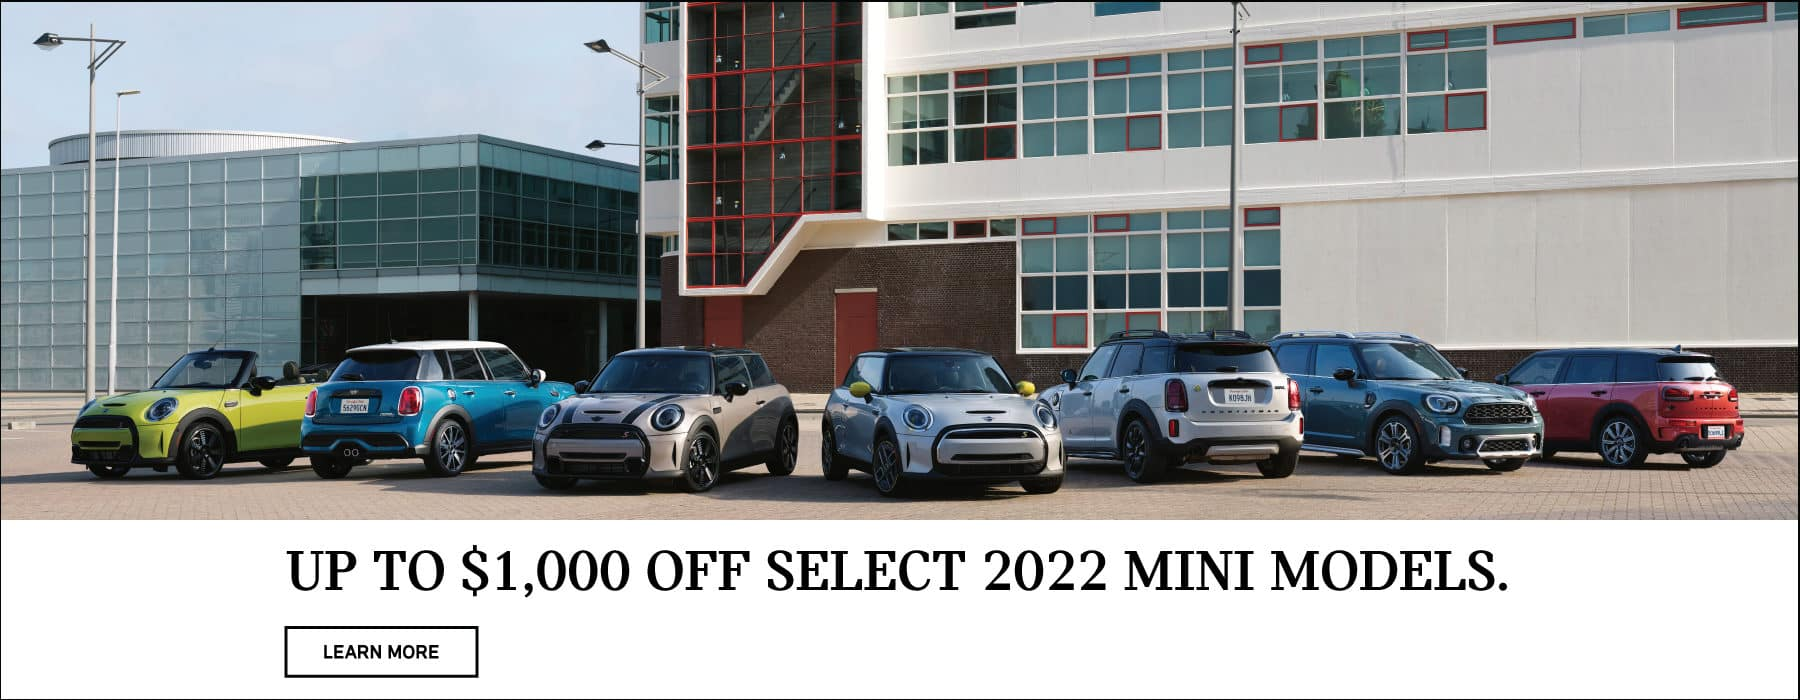 Up to $1,000 off select 2022 MINI models. Valid through08/02/21. Click to learn more. Image shows a family of 2022 MINI vehicles parked on concrete in front of a modern building.